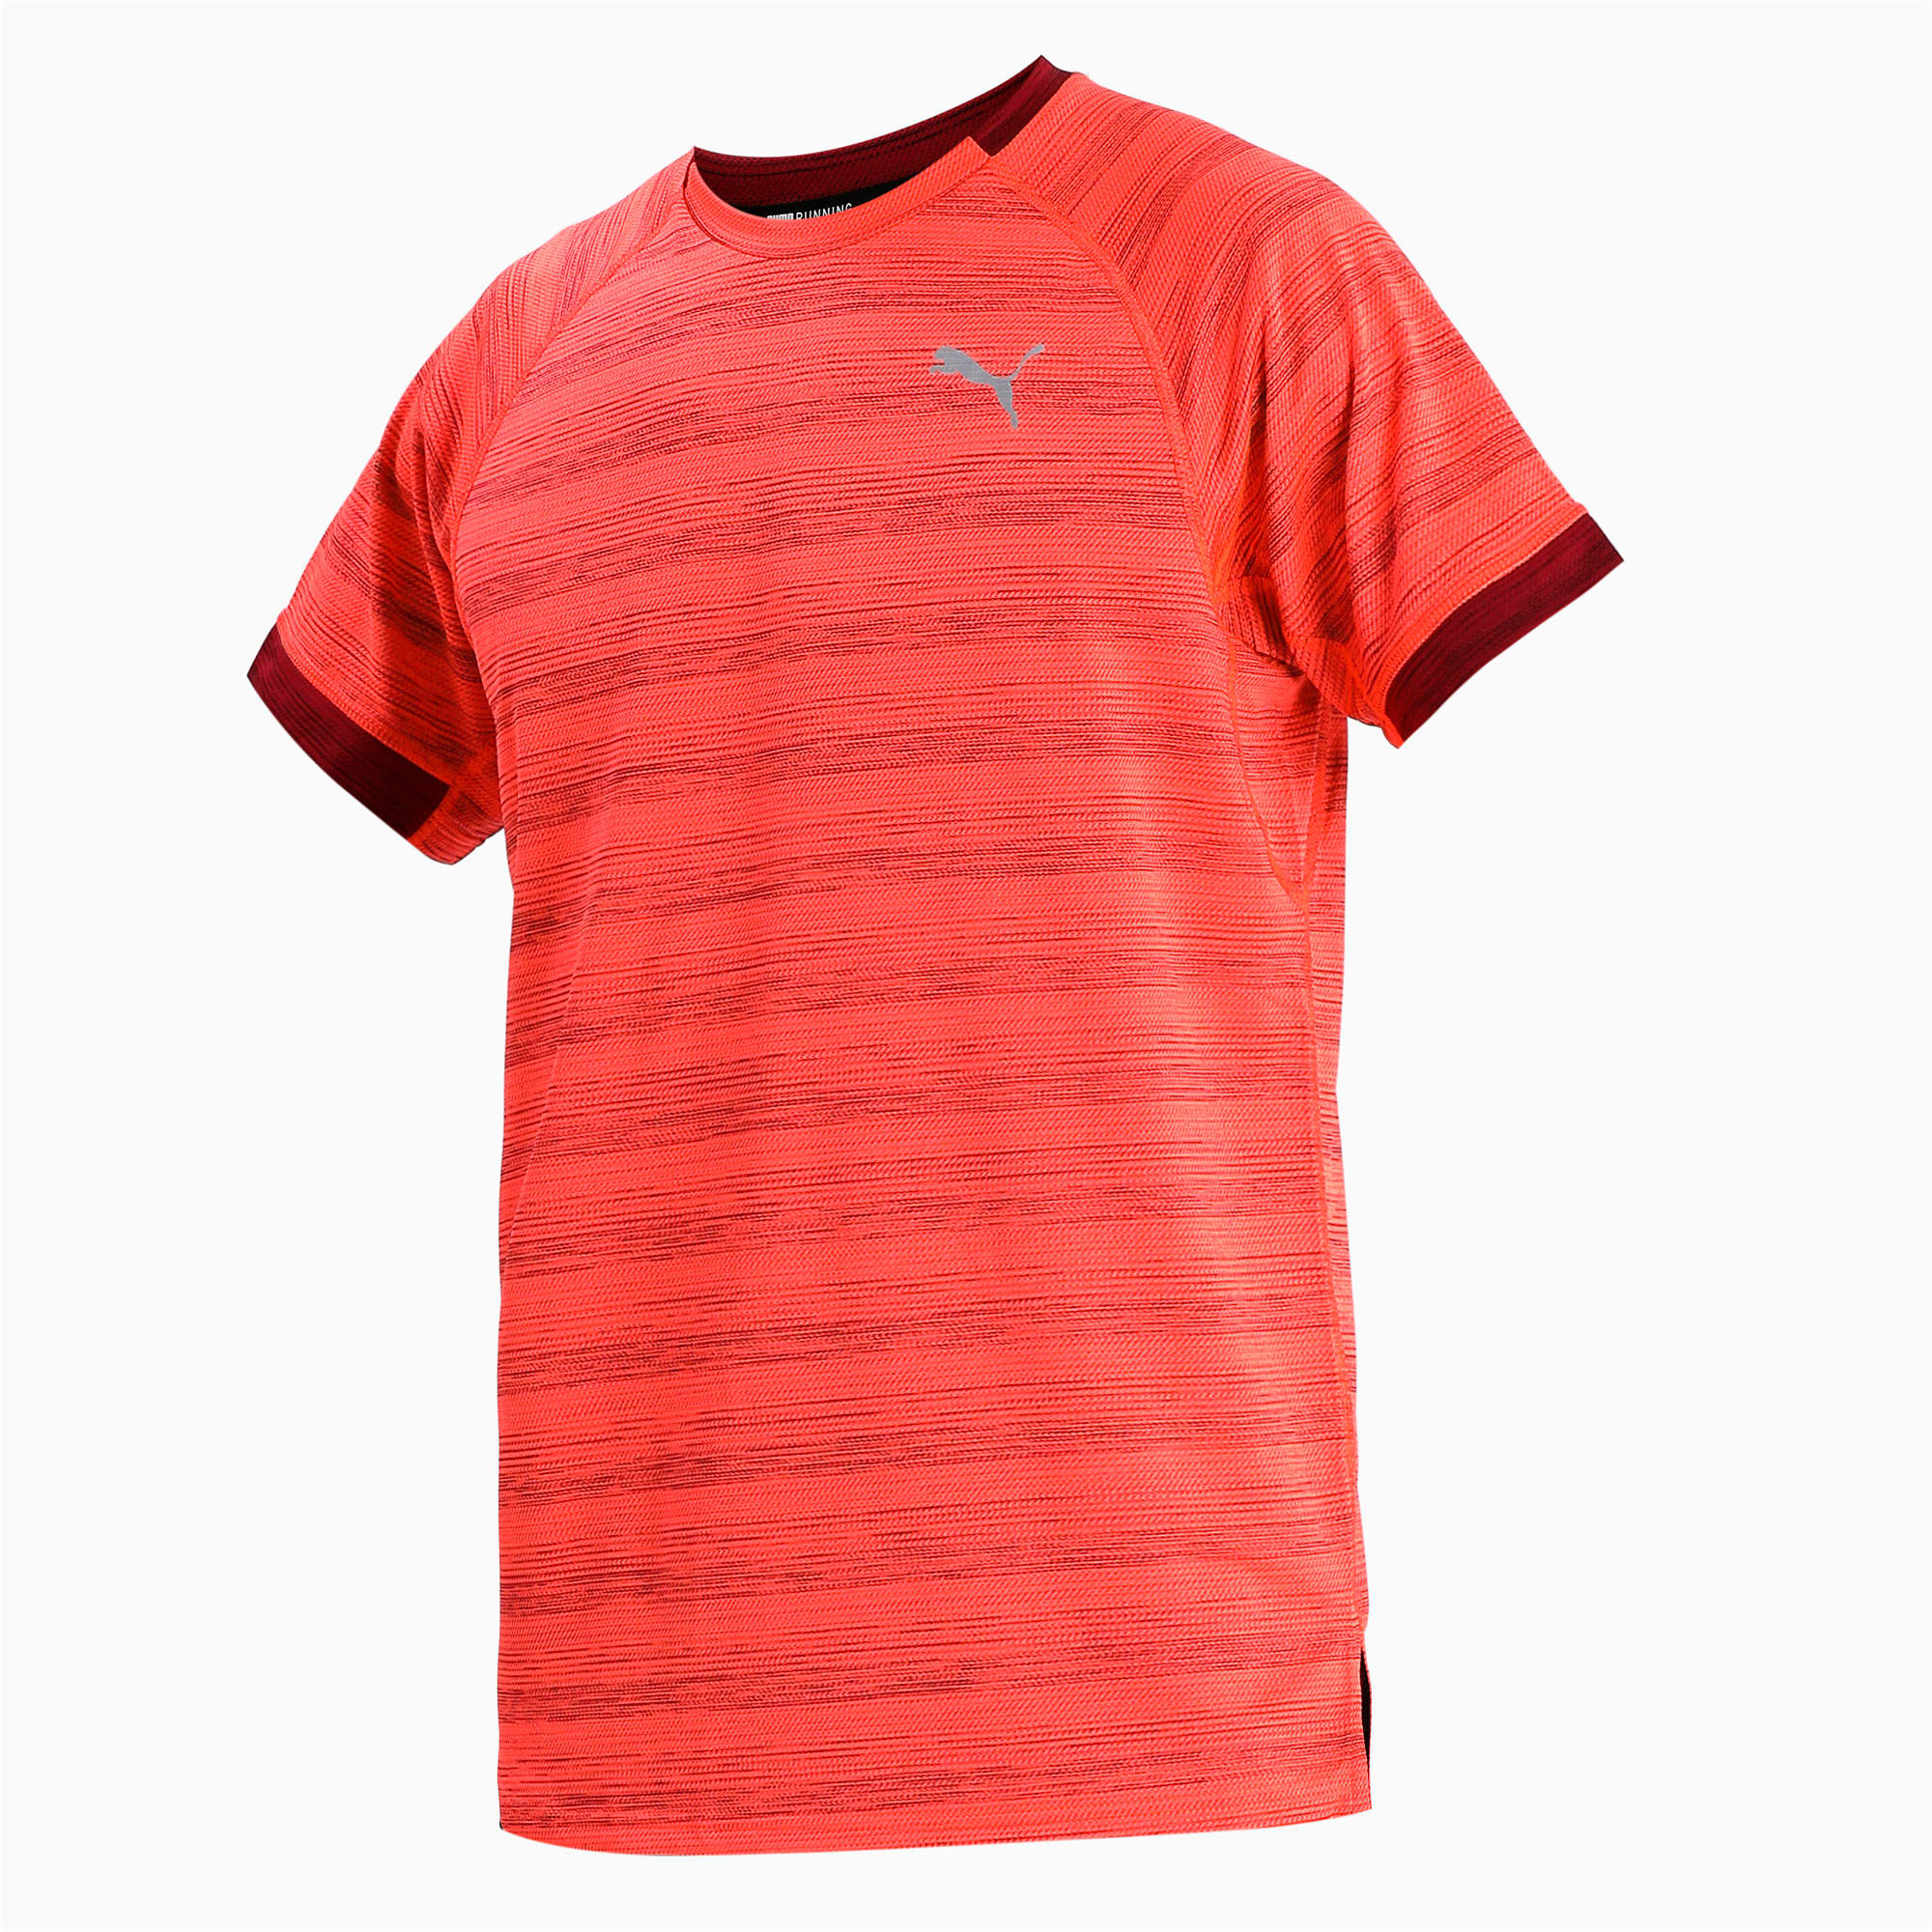 Thumbnail 4 of Get Fast THERMO R+ Men's Running Tee, Nrgy Red Htr-Rhubarb Htr, medium-IND